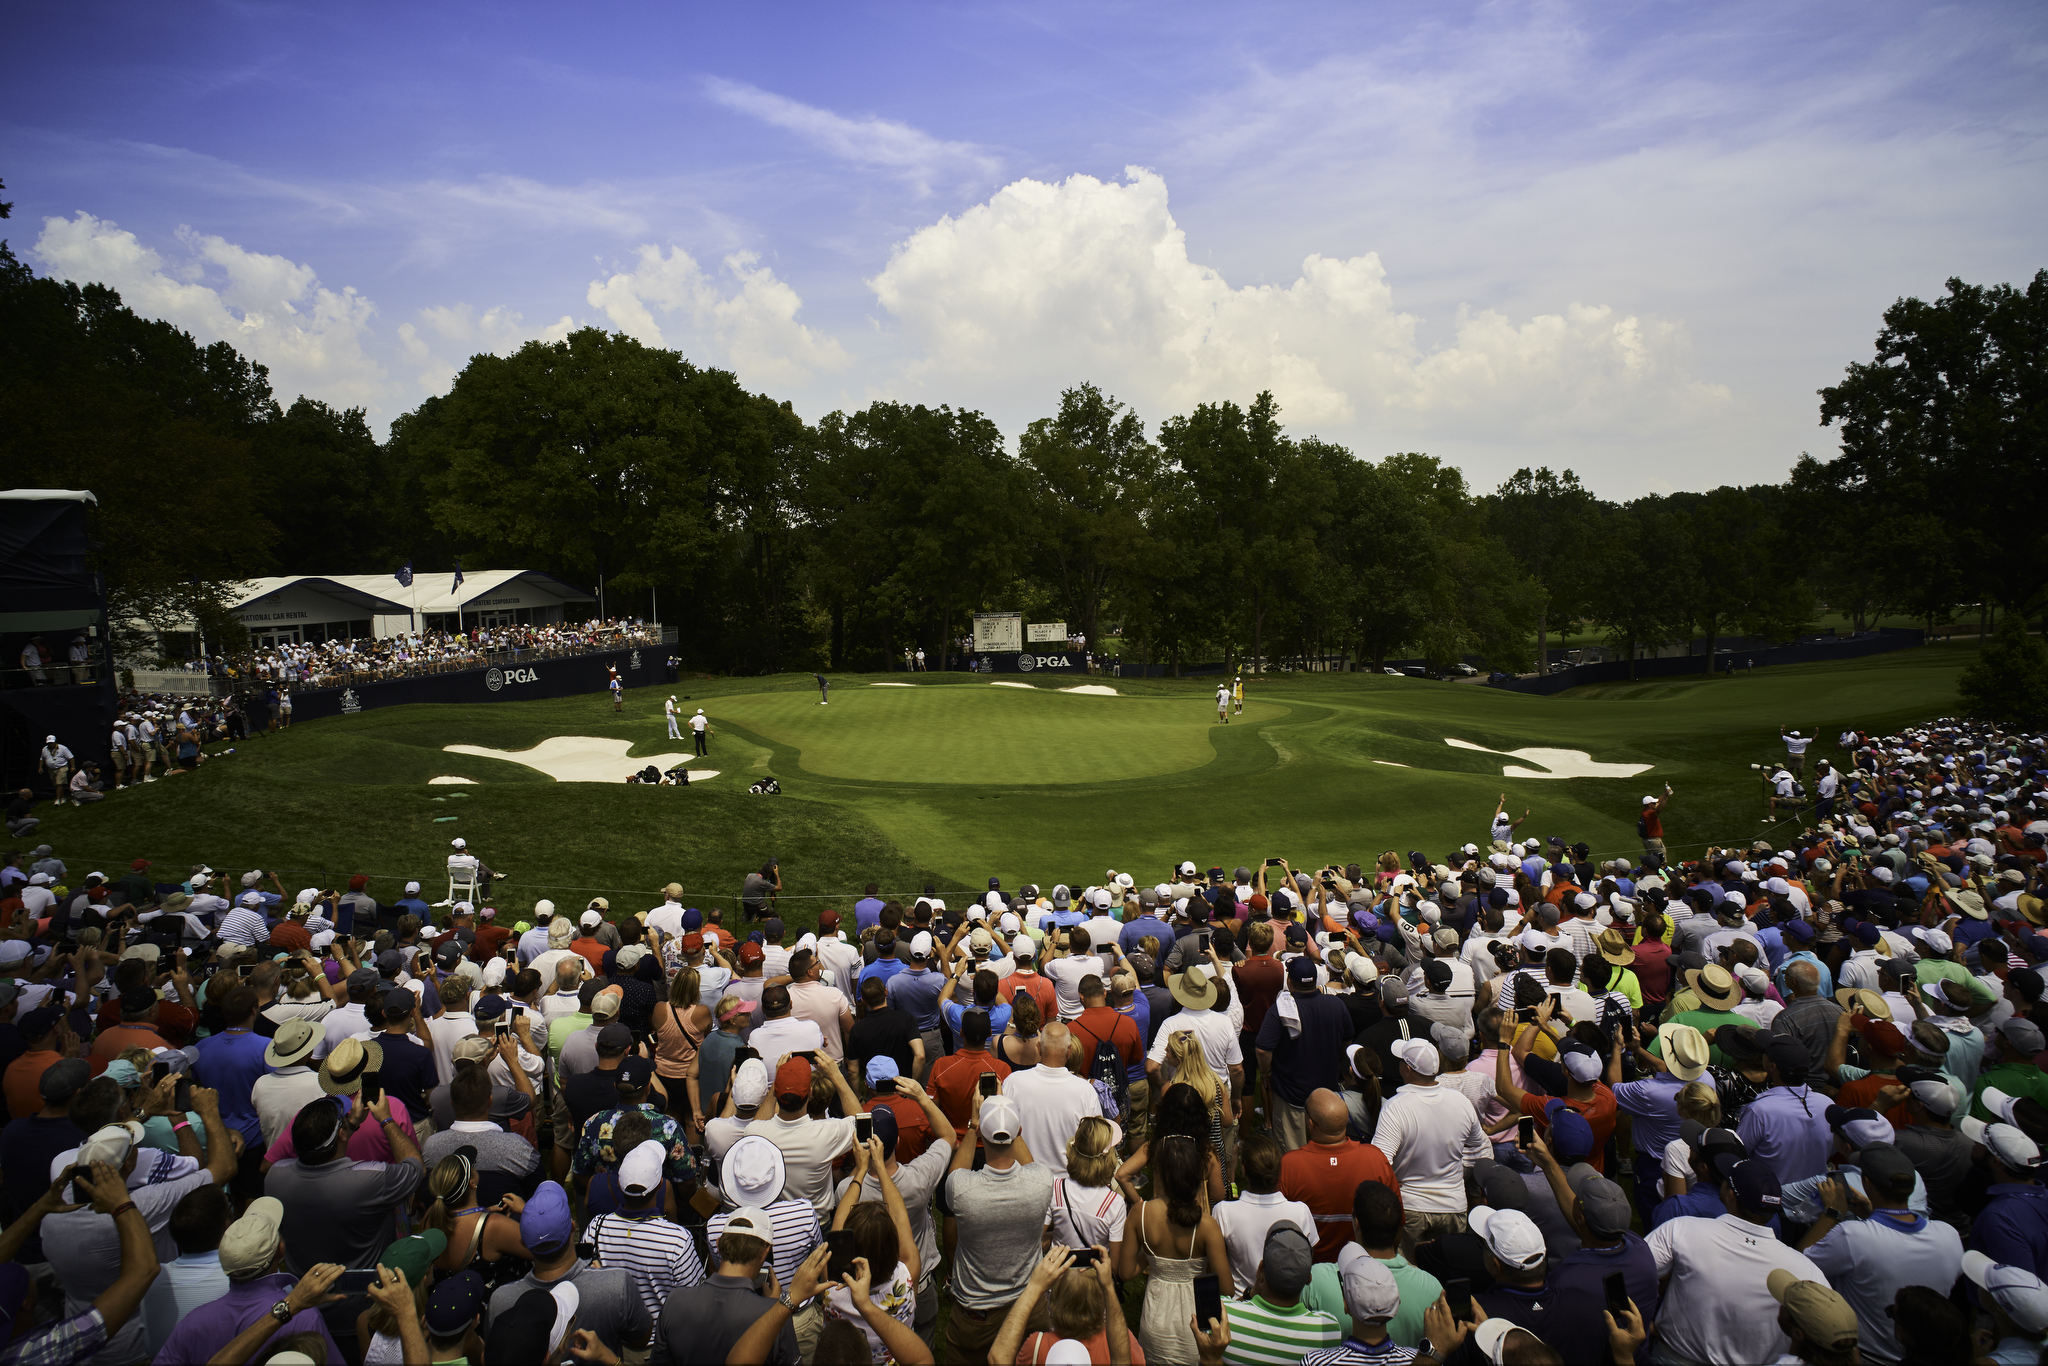 Ninth green at Bellerive Country Club during the 2018 PGA Championship.  Sony A7rIII, Leica 21mm f2.8 Elmarit   and a Metabones Leica M-Sony E mount adapter, on a 20-foot extension pole, composed, exposed and triggered using the camera's Smartphone Remote Control feature and Sony PlayMemories app.